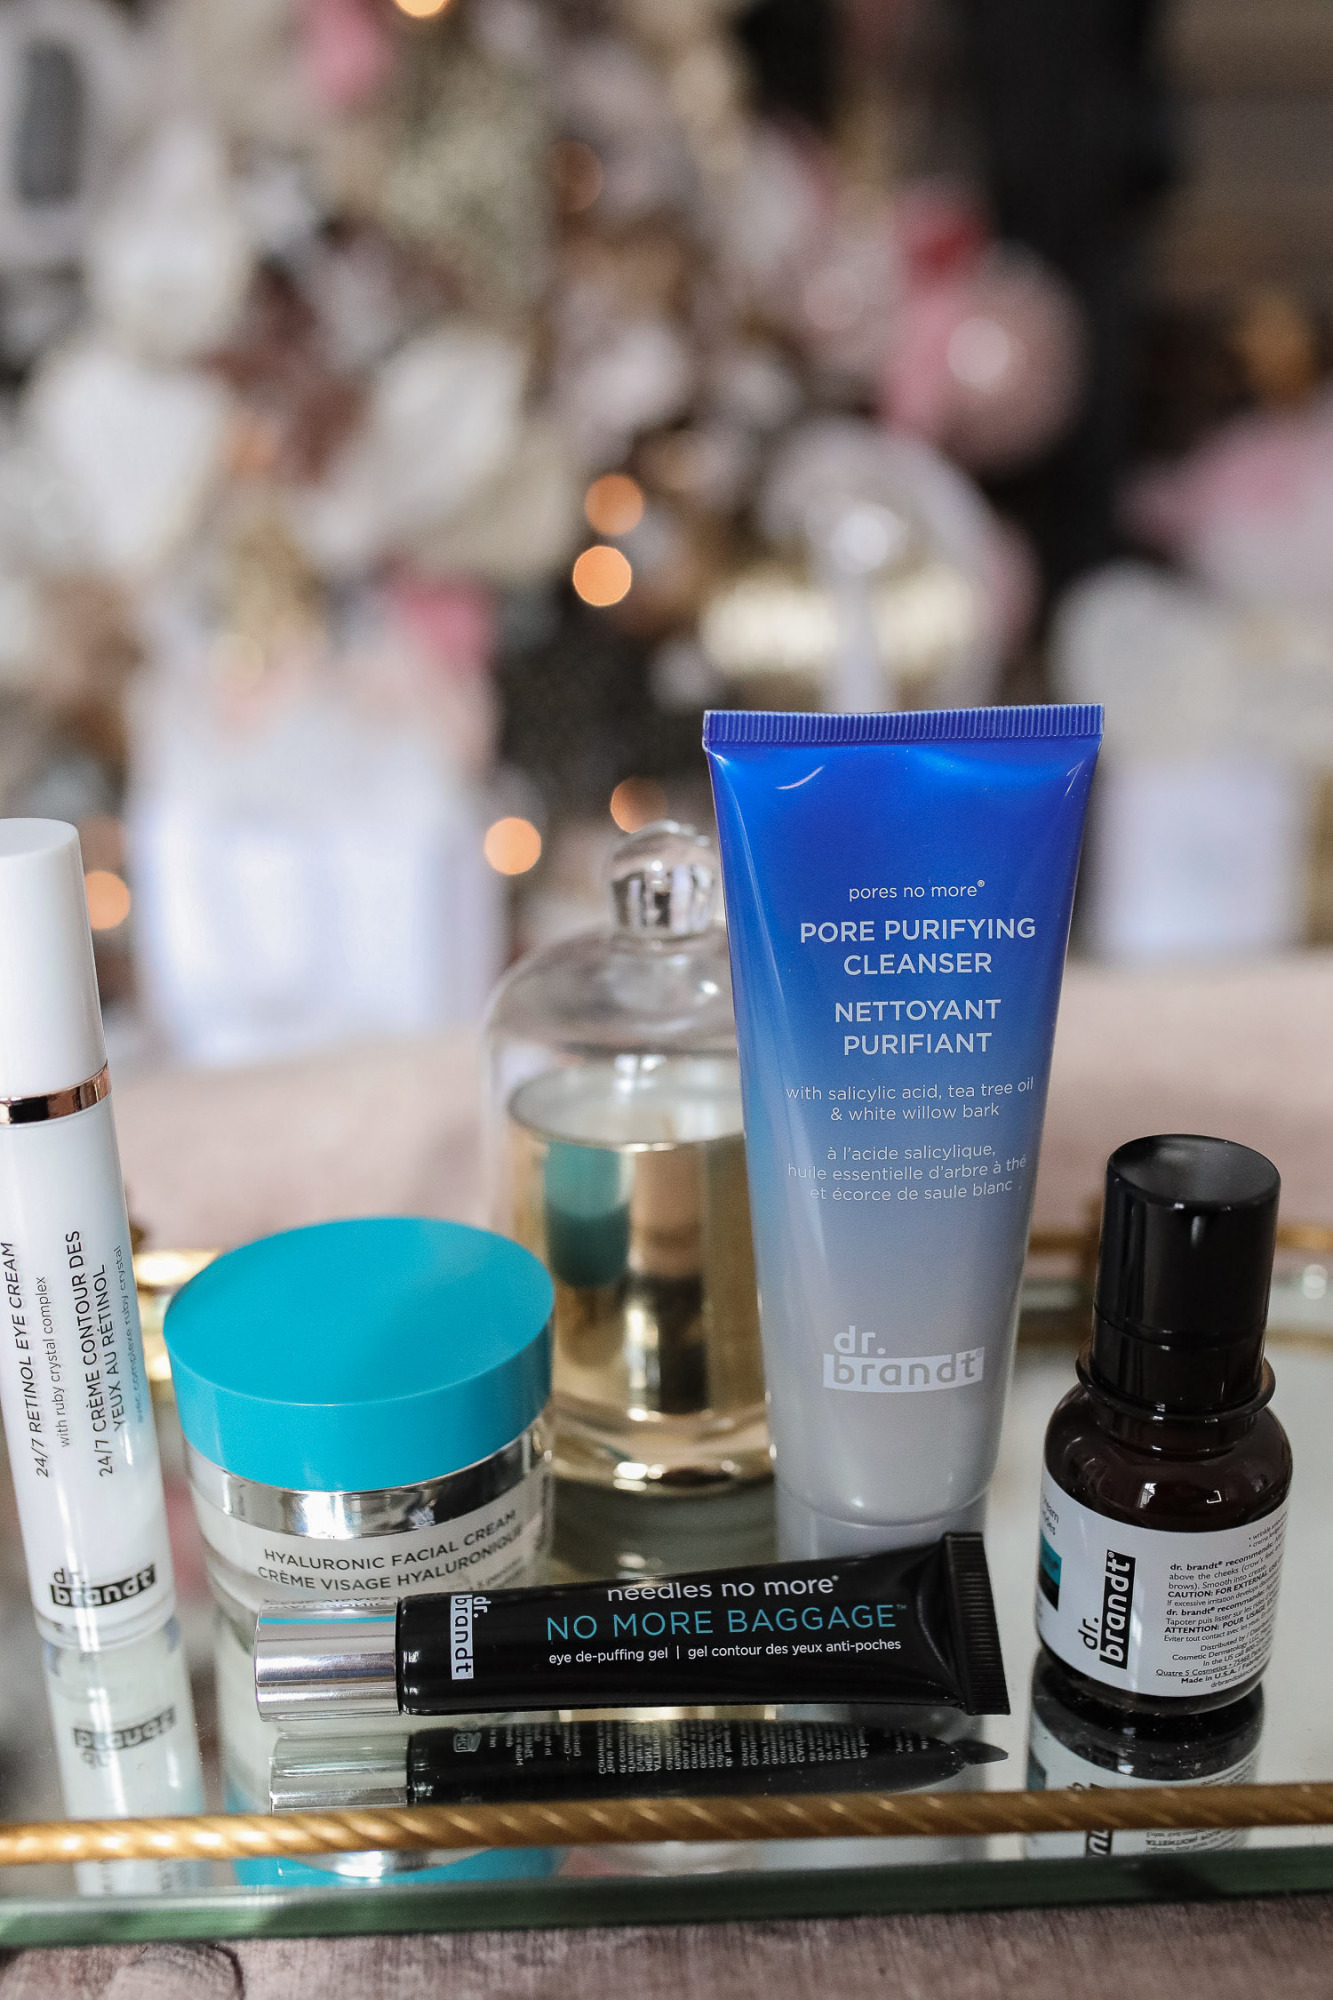 Dr Brandt review eye baggage, best dr brandt products, Dr Brandt Pores No More, Emily Gemma |Dr. Brandt by popular US beauty blog, The Sweetest Thing: image of Dr. Brandt skincare products.